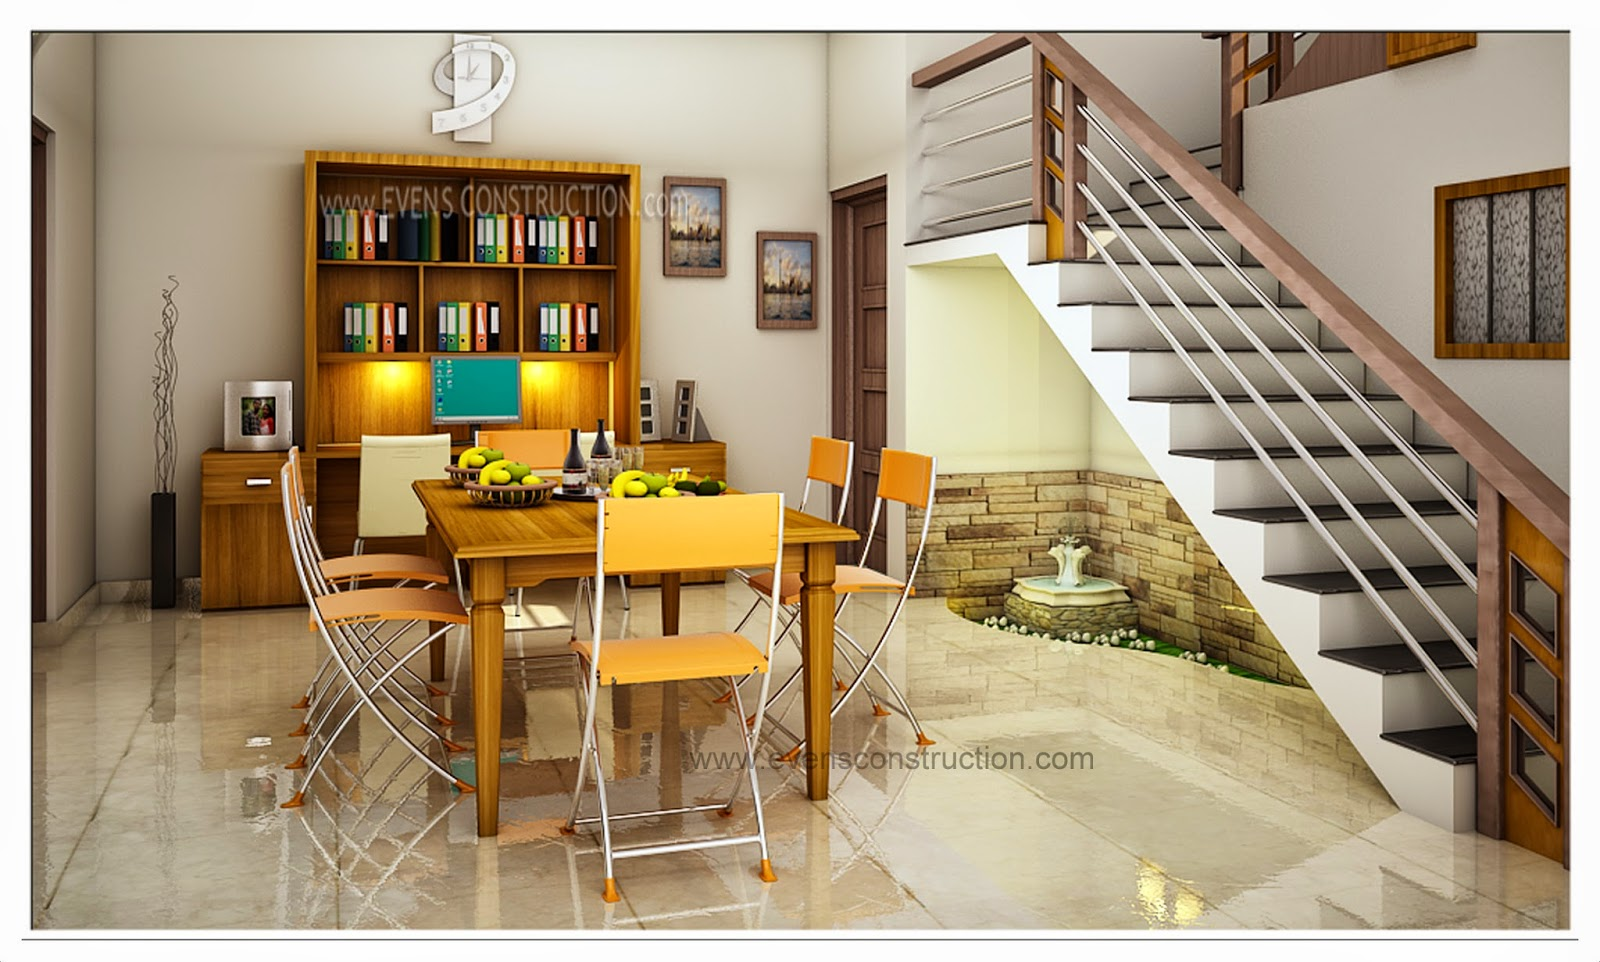 Evens construction pvt ltd beautiful interior design for for In n out dining room hours